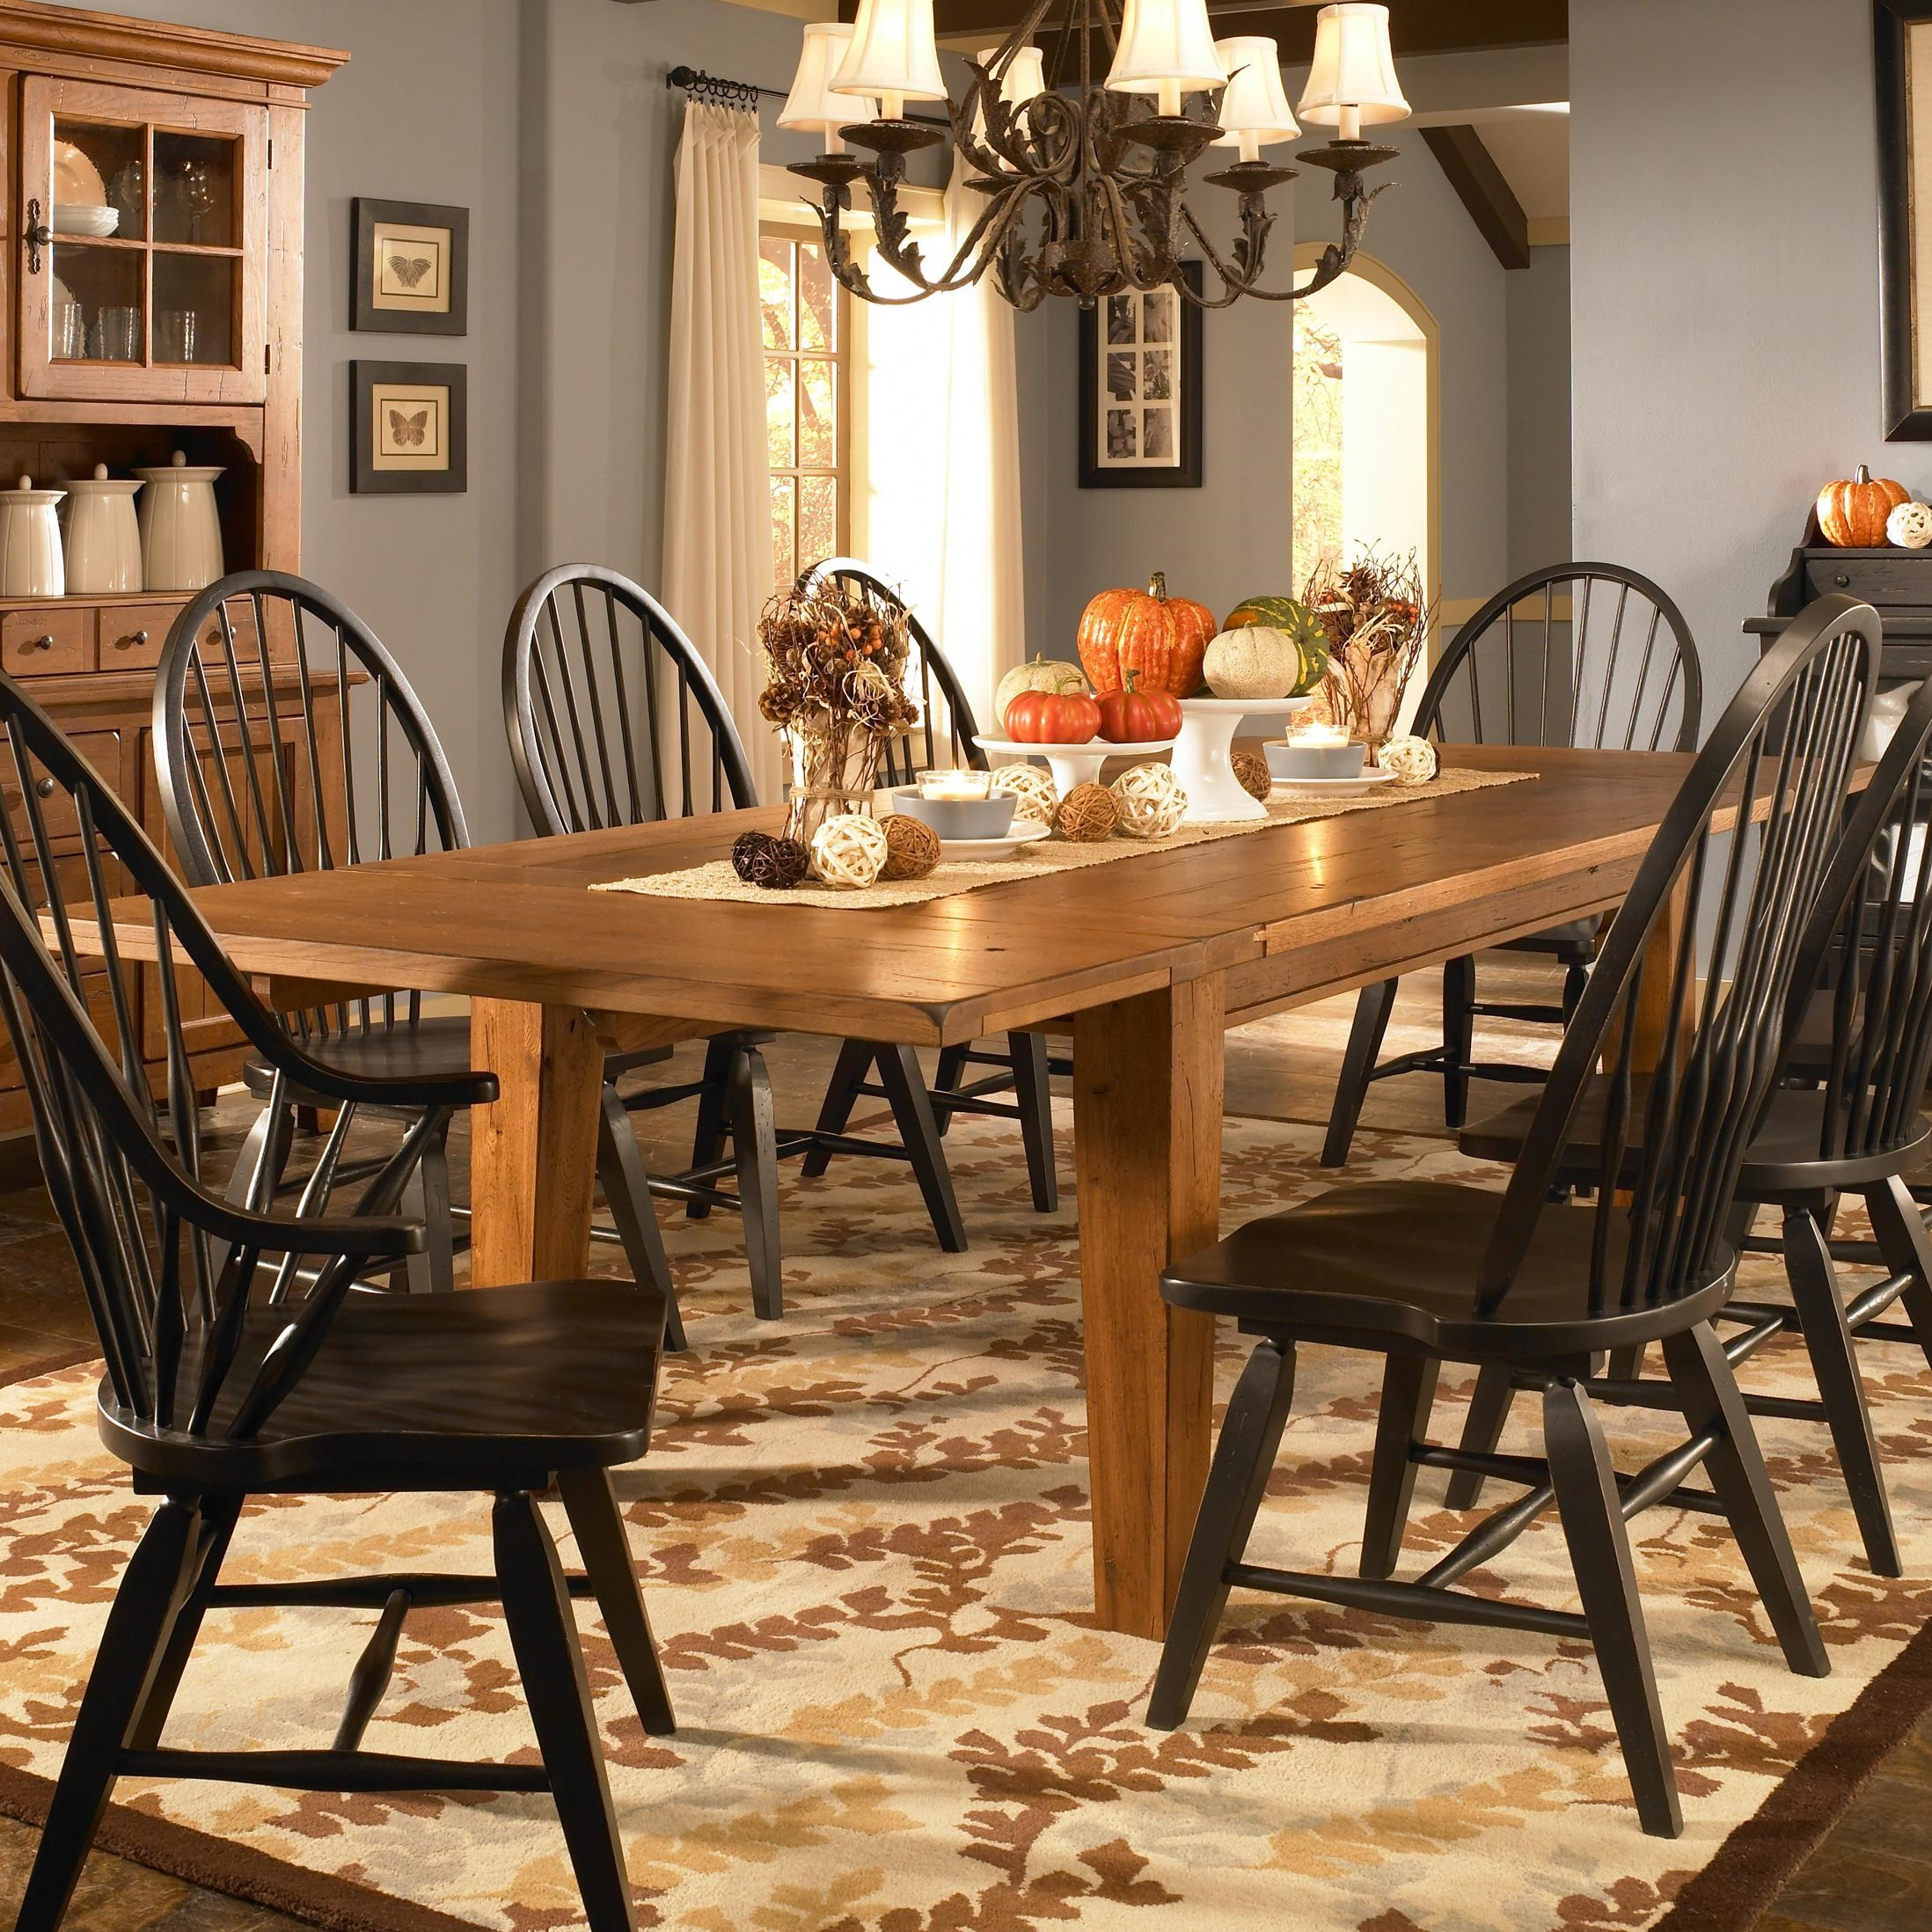 broyhill furniture attic heirlooms leg dining table with leaves rh lindysfurniture com broyhill kitchen table broyhill furniture kitchen tables